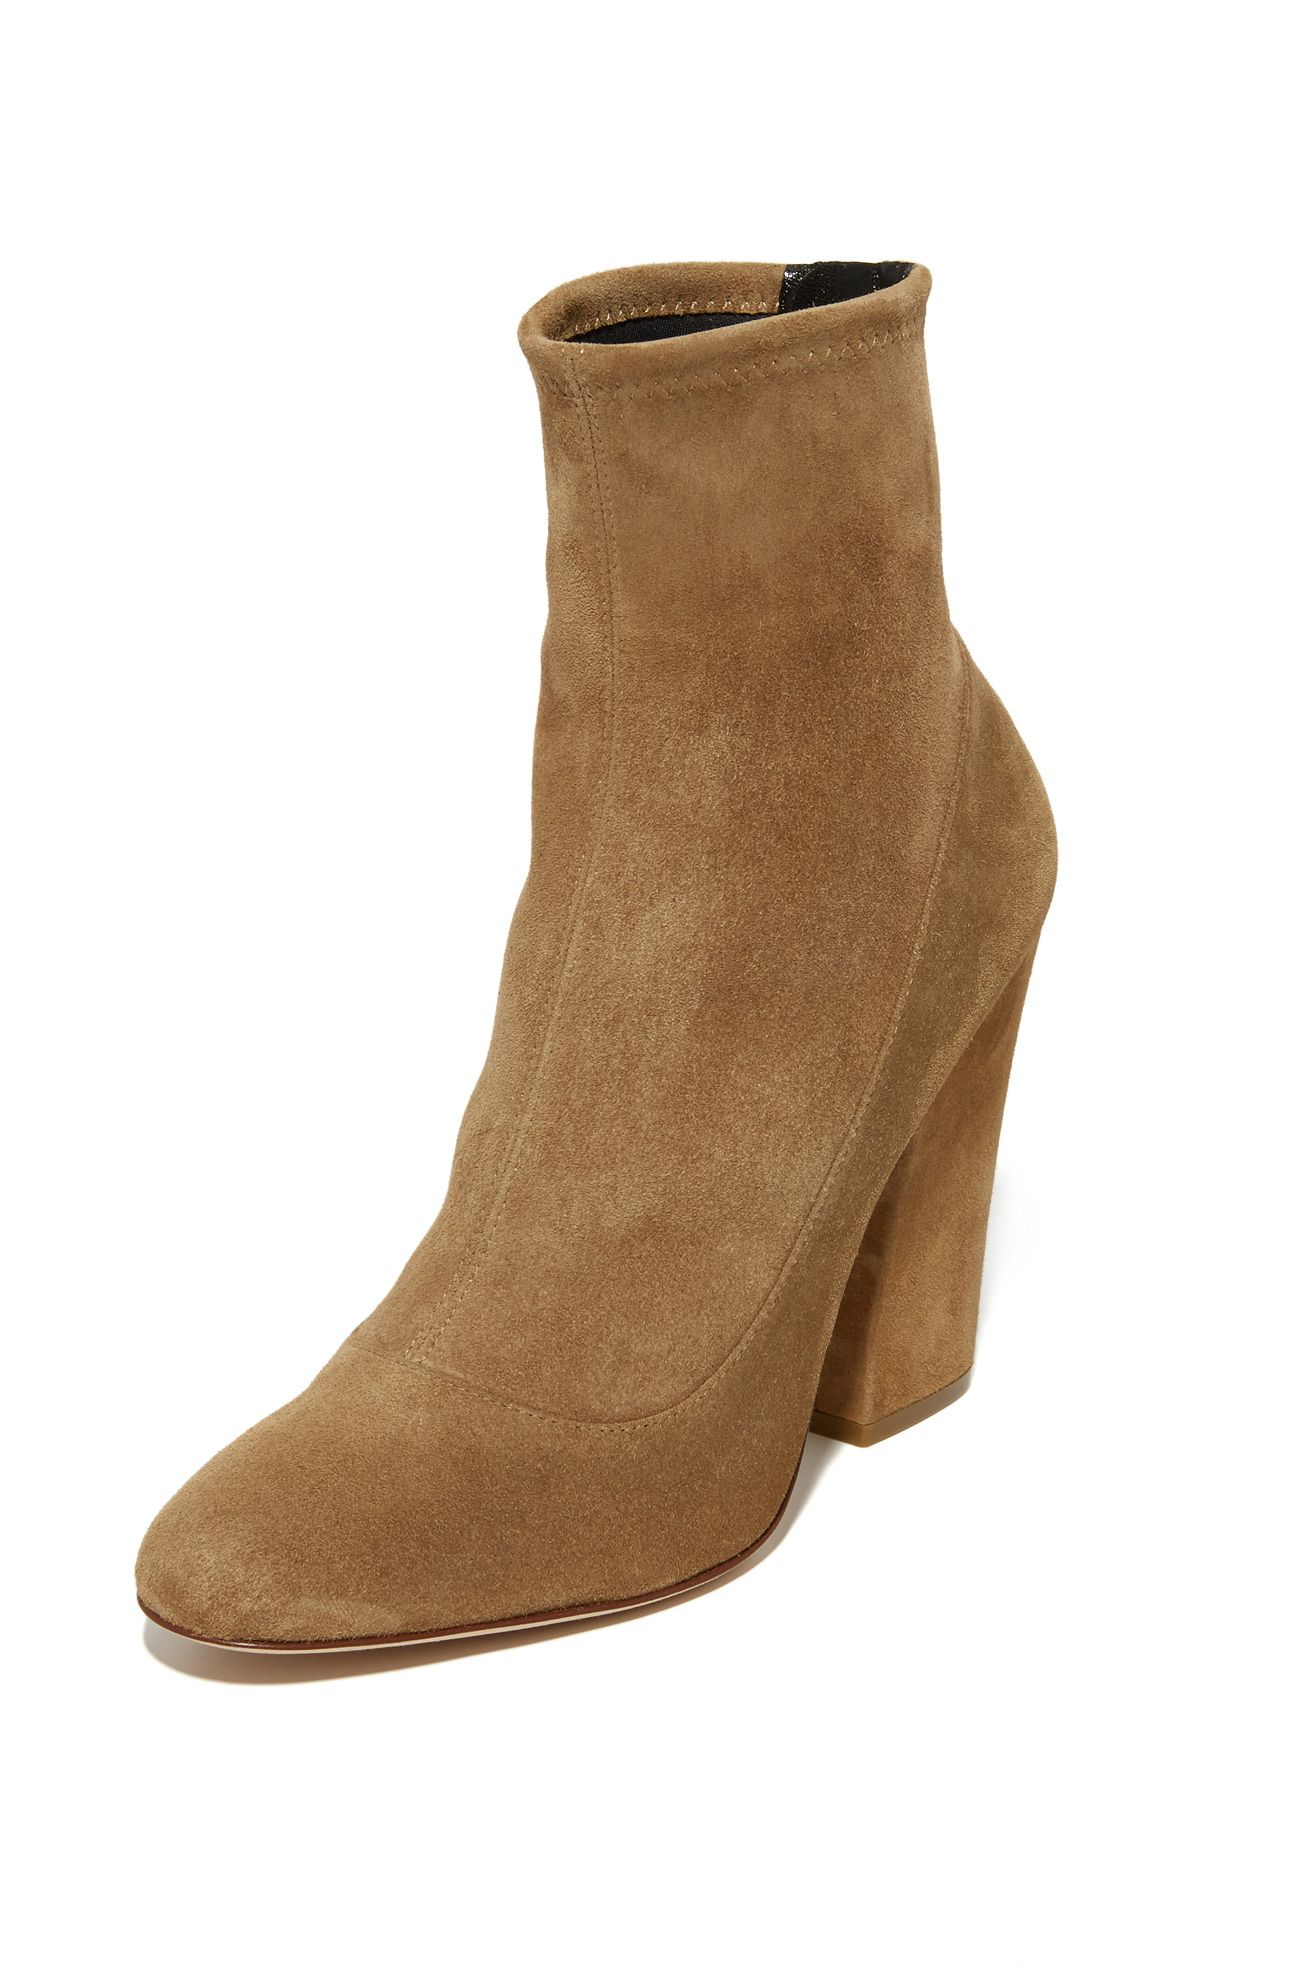 "<p>Sergio Rossi Virginia Booties, $860; <a href=""https://www.shopbop.com/virginia-bootie-sergio-rossi/vp/v=1/1519047385.htm?fm=search-viewall-shopbysize&os=false"" target=""_blank"">shopbop.com</a></p>"